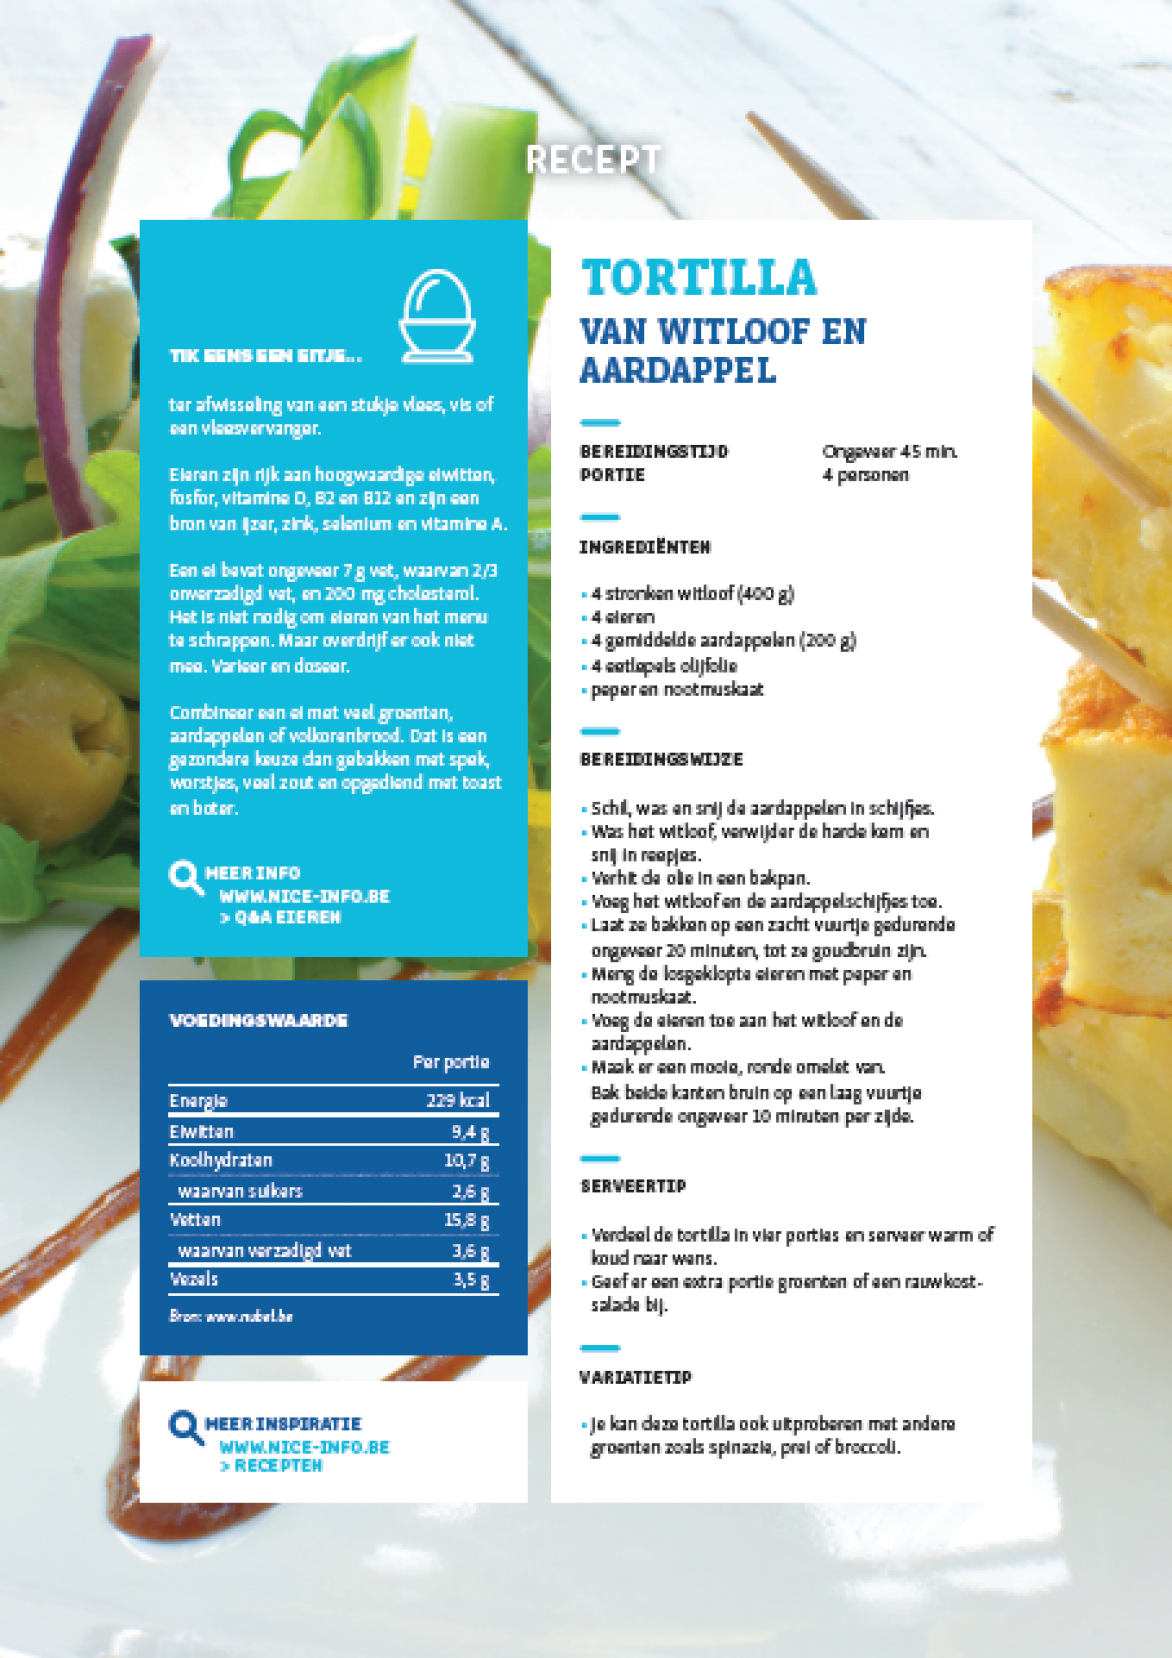 RECEPTFICHE - Tortilla van witloof